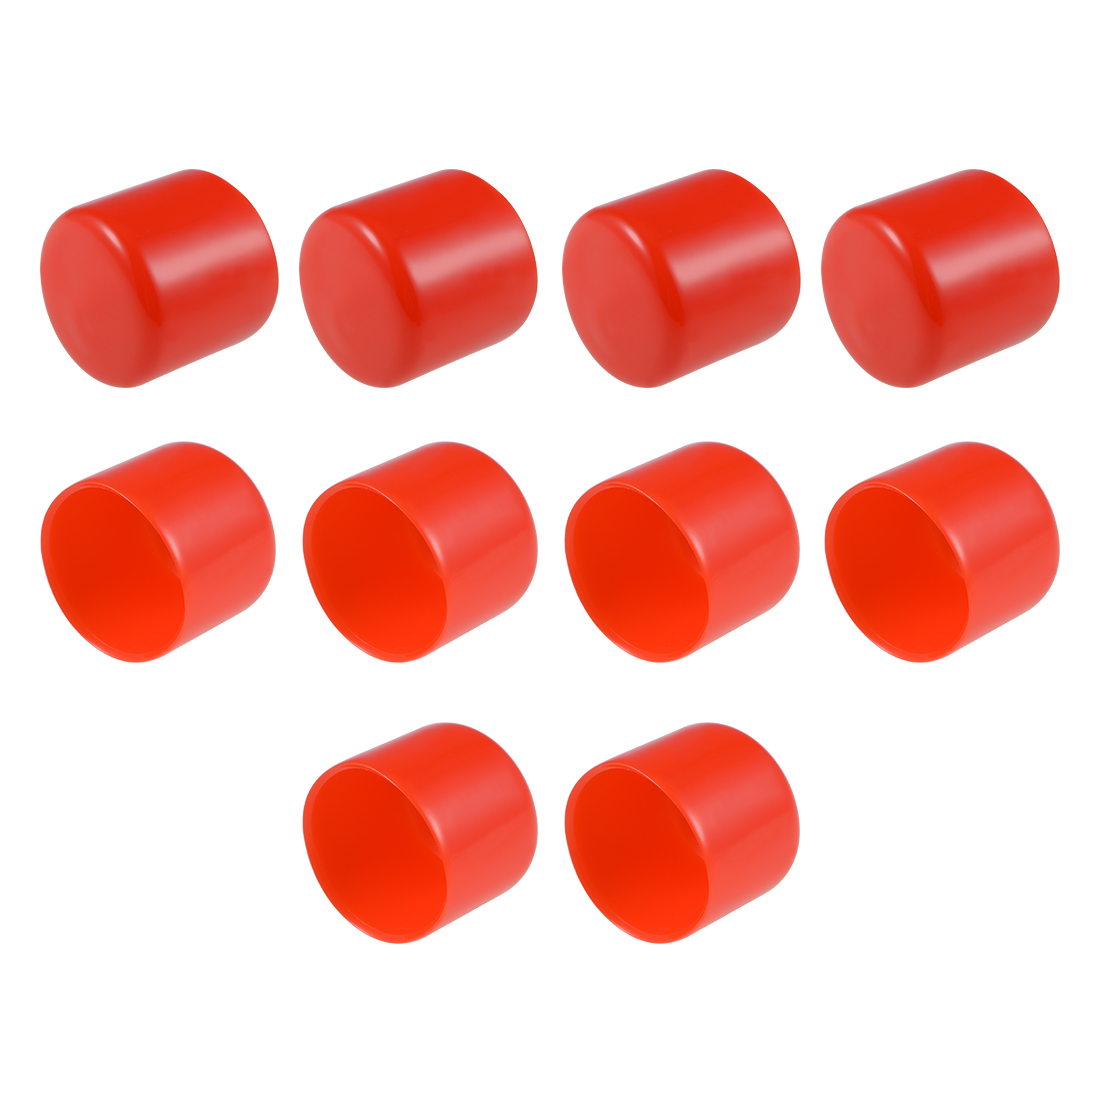 Screw Thread Protector, 35mm ID Round End Cap Cover Red Tube Caps 10pcs